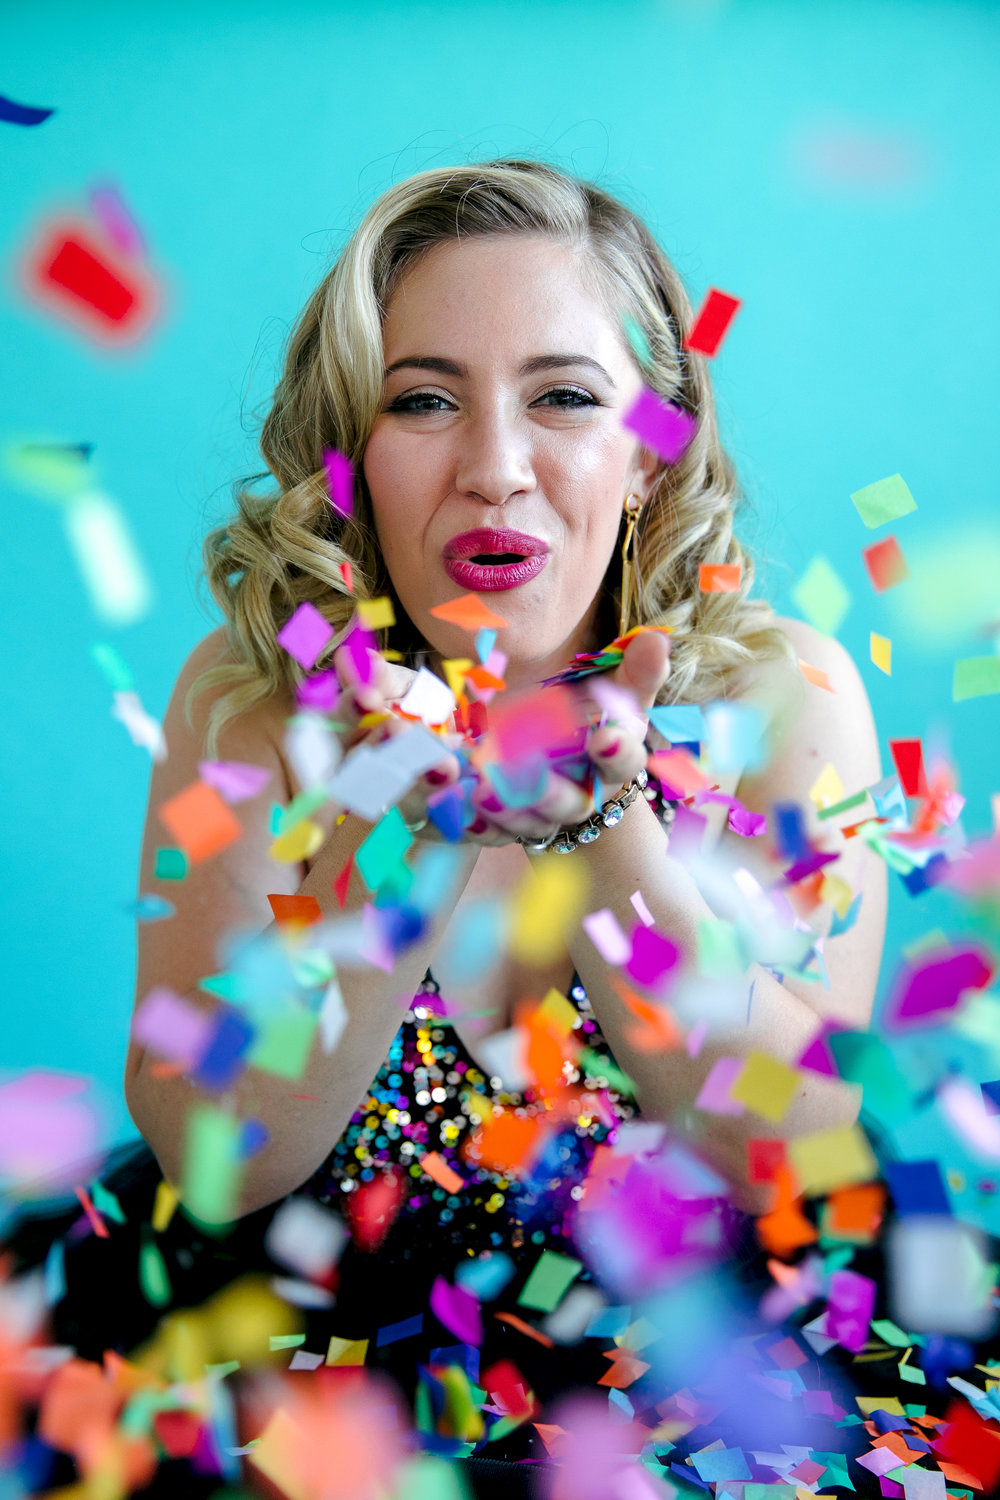 san jose california makeup artist kim baker beauty celebrates 30th birthday with a fun photoshoot wearing tulle skirt and holding confetti